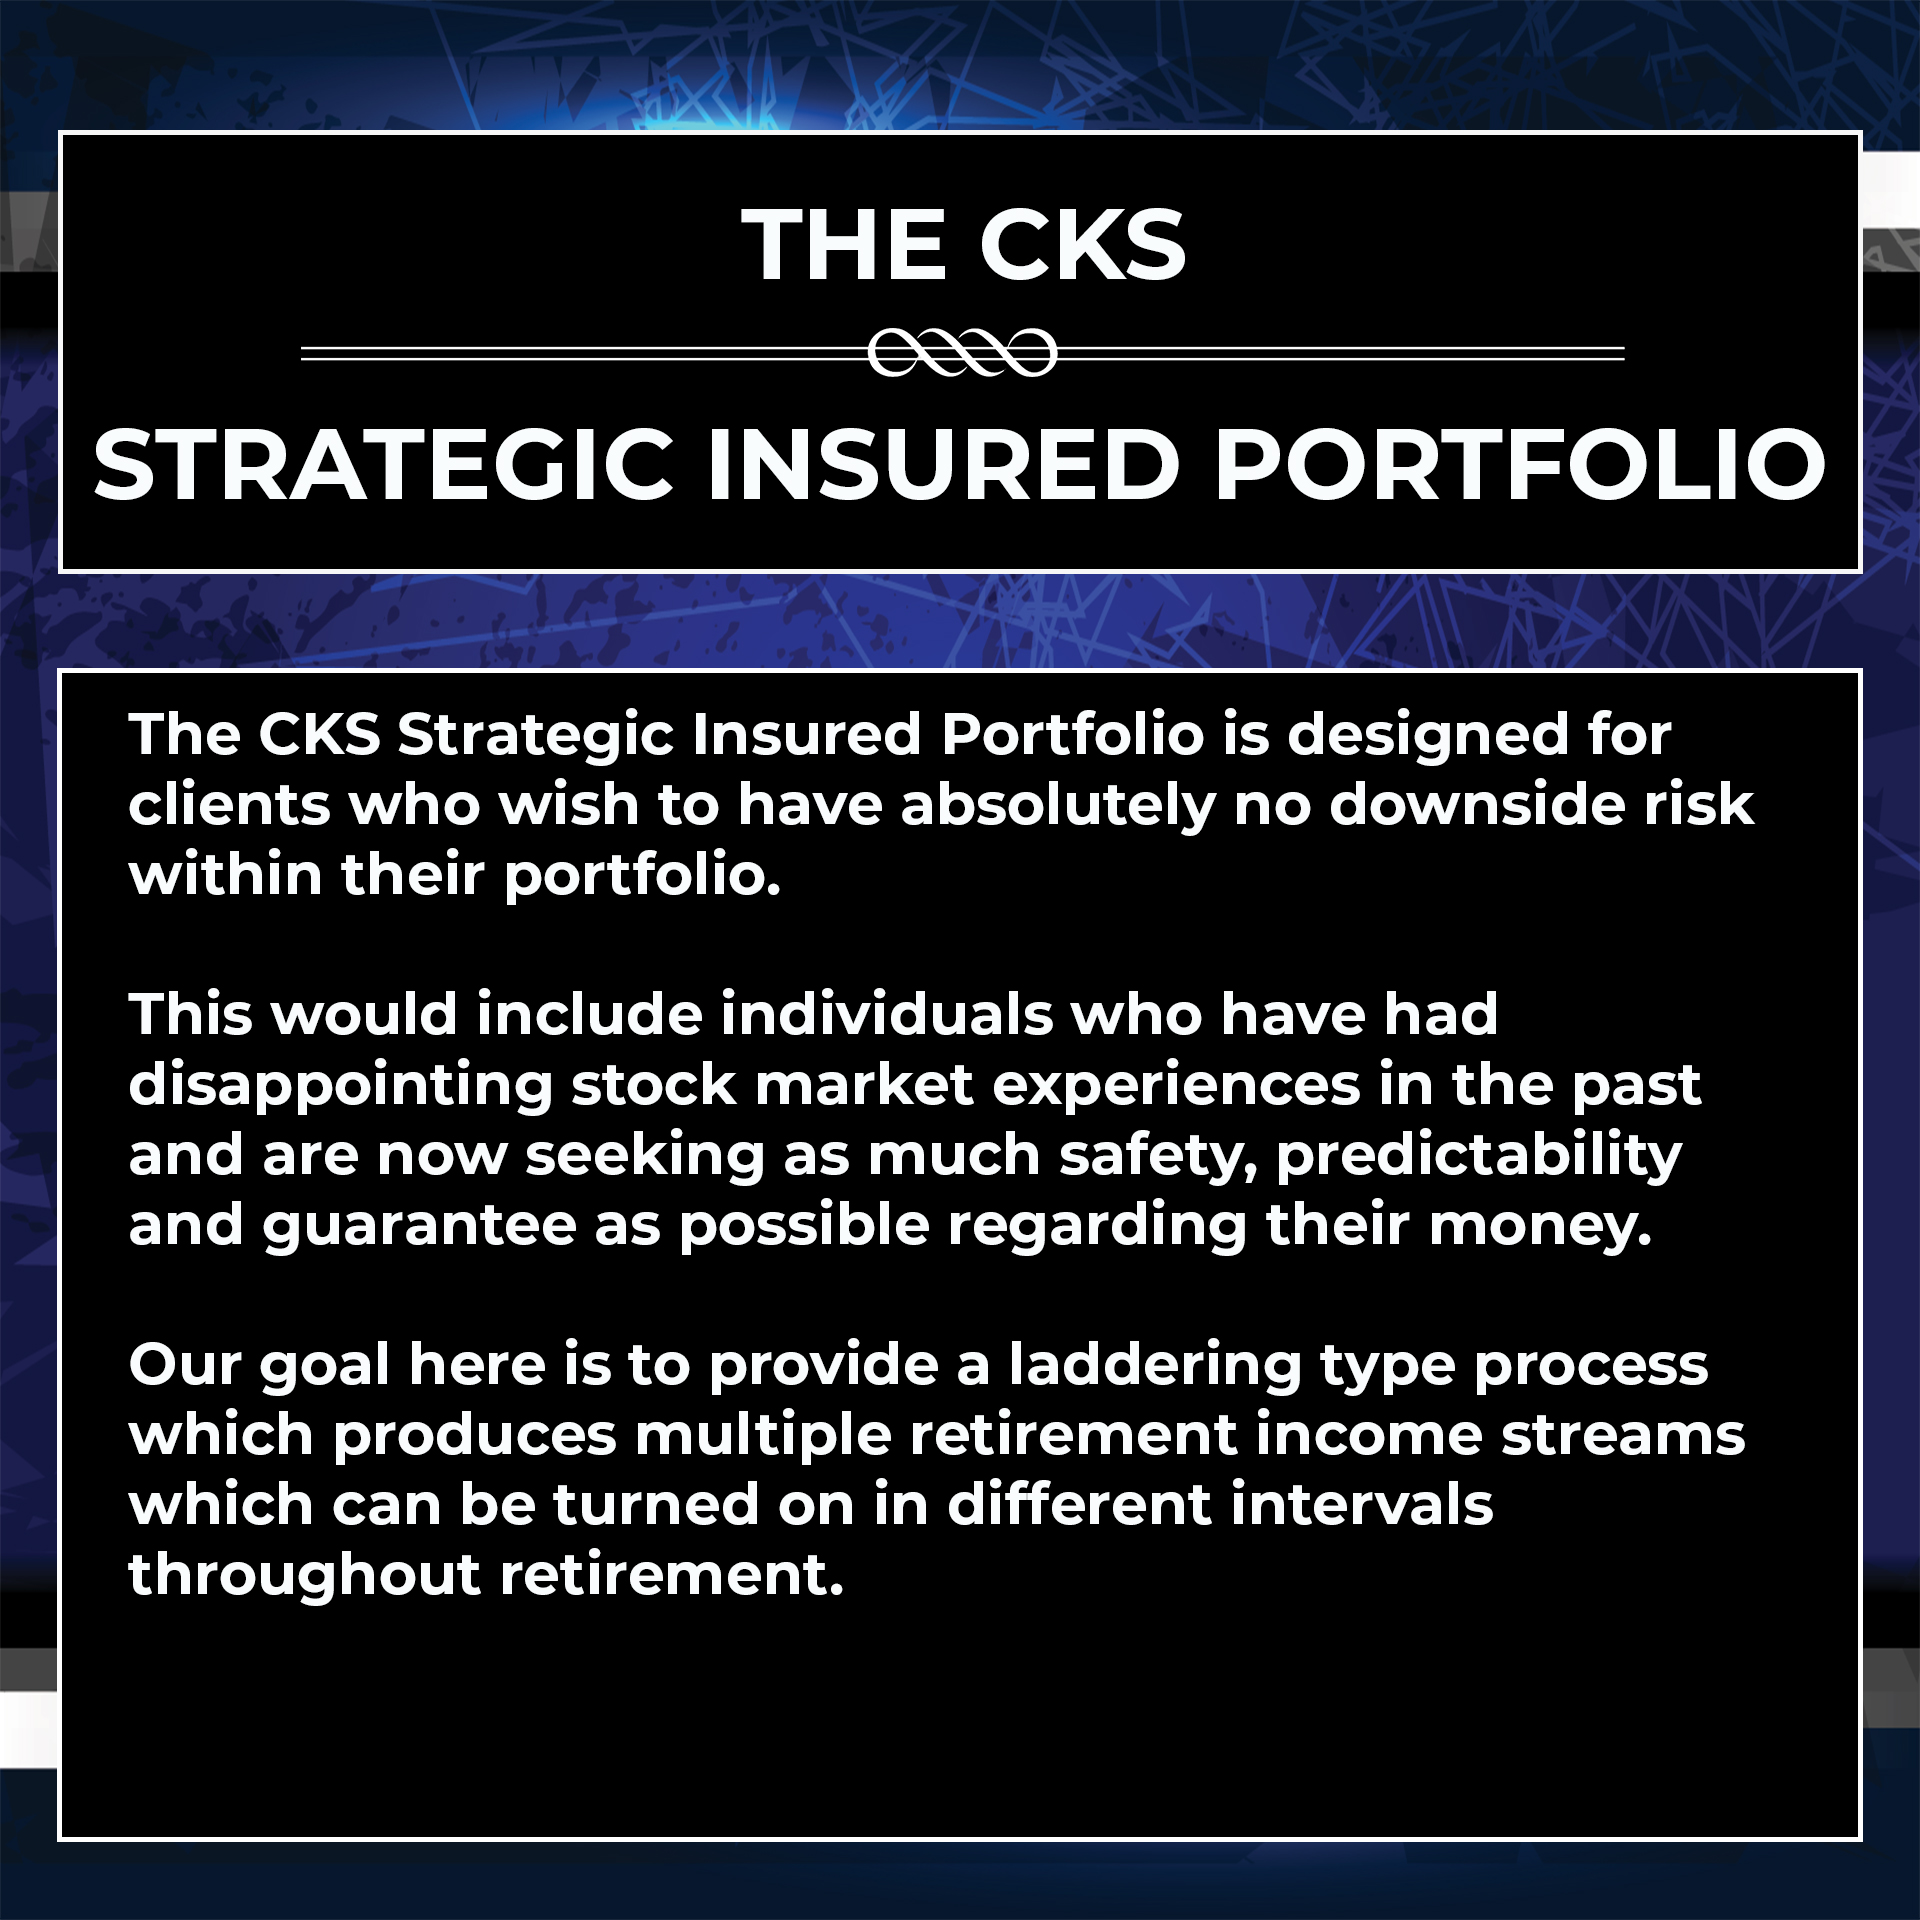 strategic insured portfolio